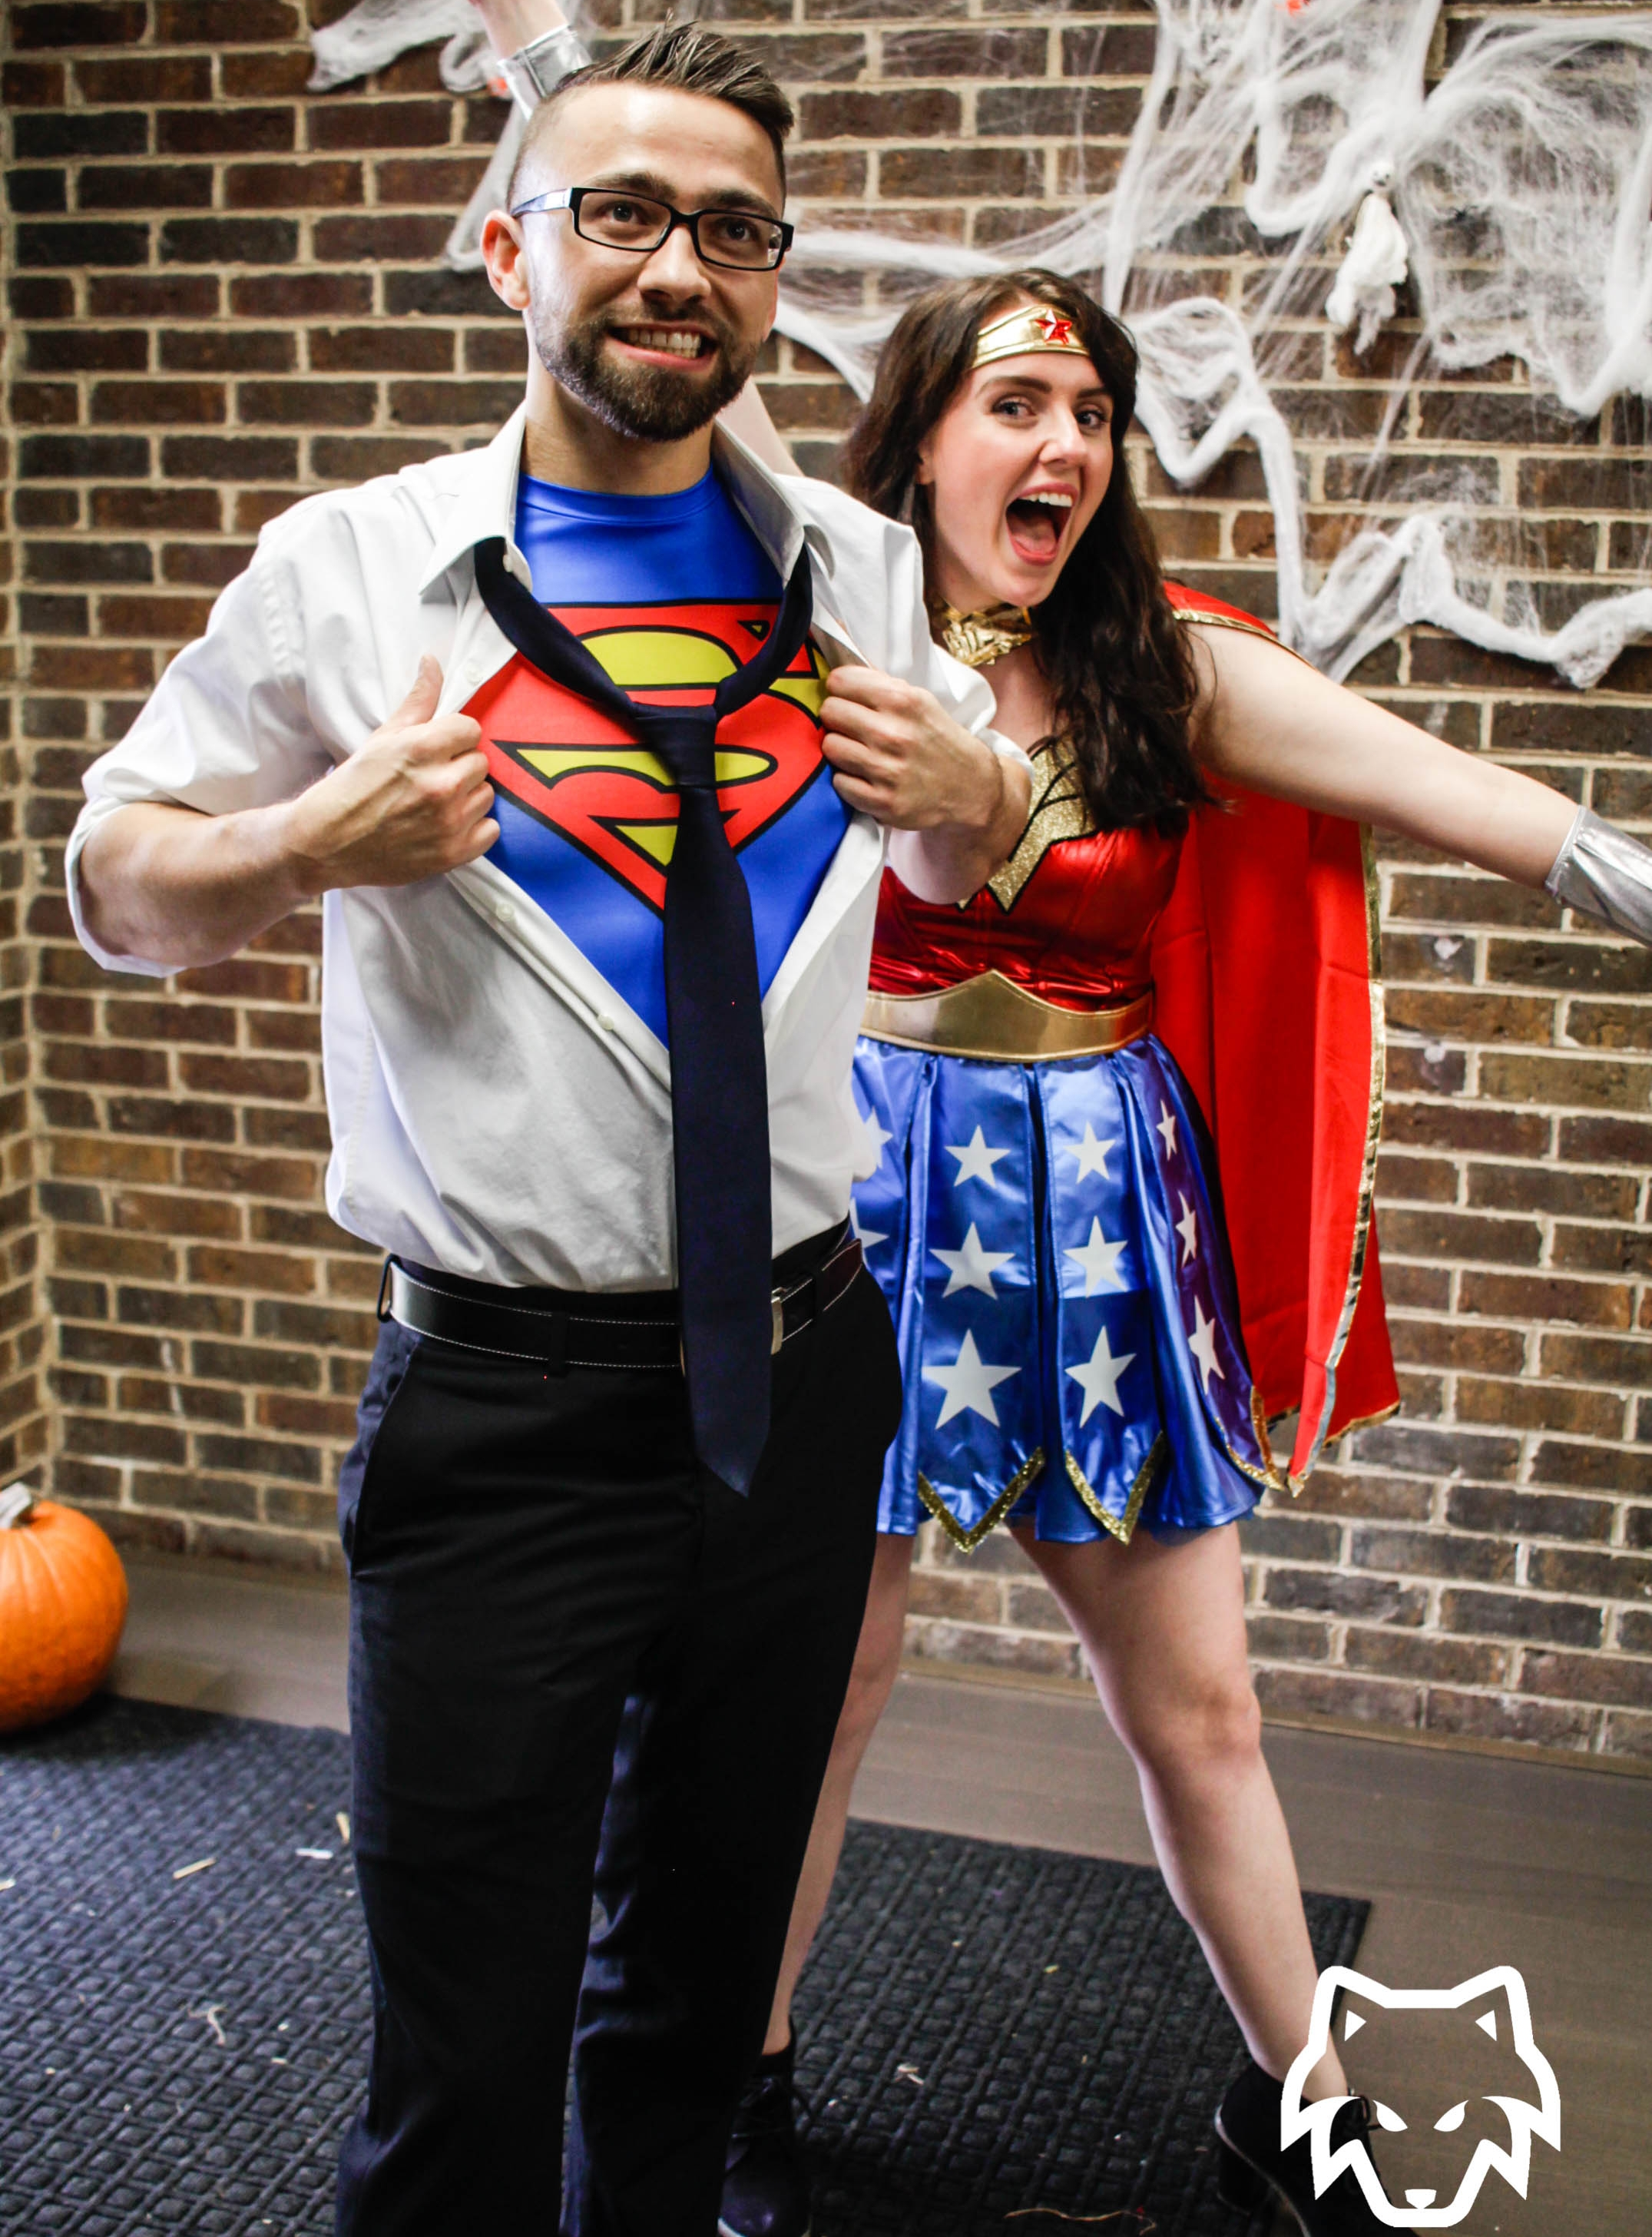 superman-wonderwoman-costume